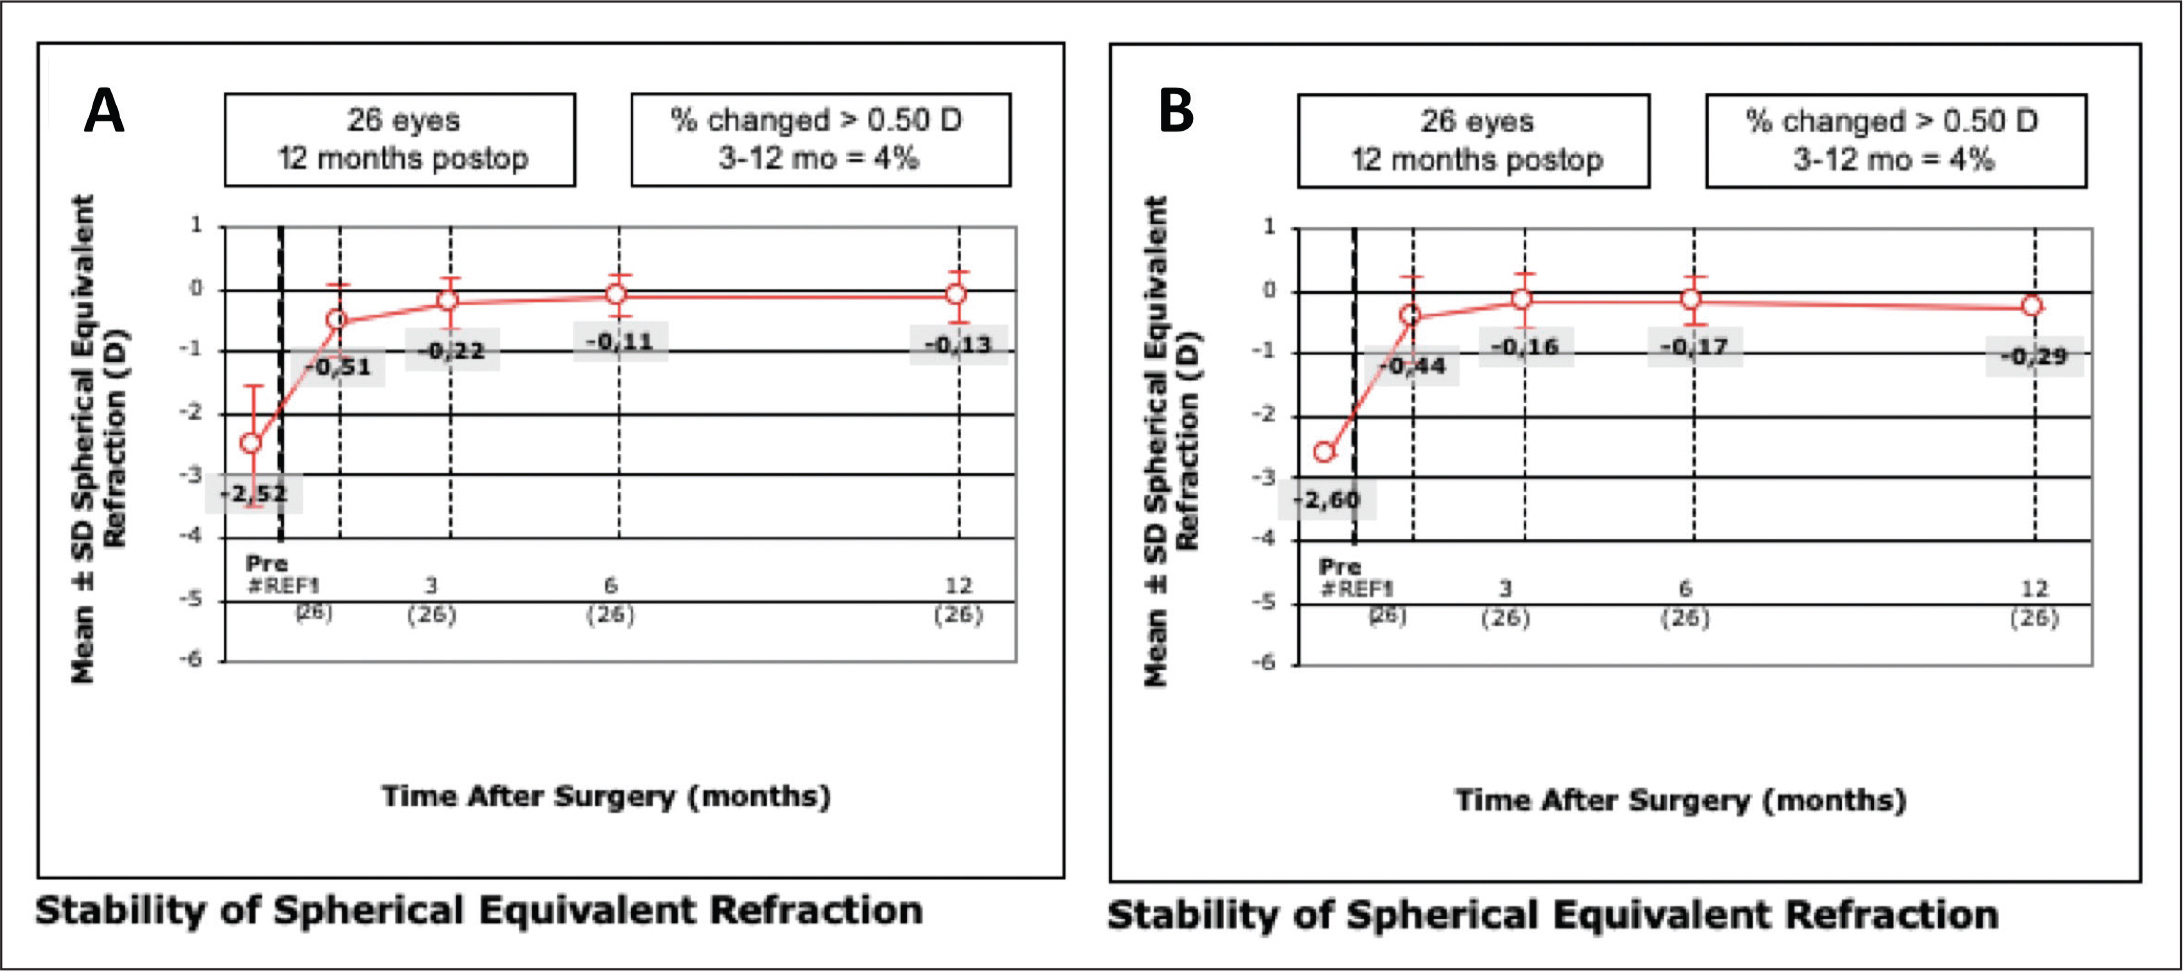 Change in manifest refraction spherical equivalent during the follow-up period in the (A) topography-guided customized ablation treatment (TCAT) and (B) wavefront-optimized (WFO) groups. D = diopters; SD = standard deviation